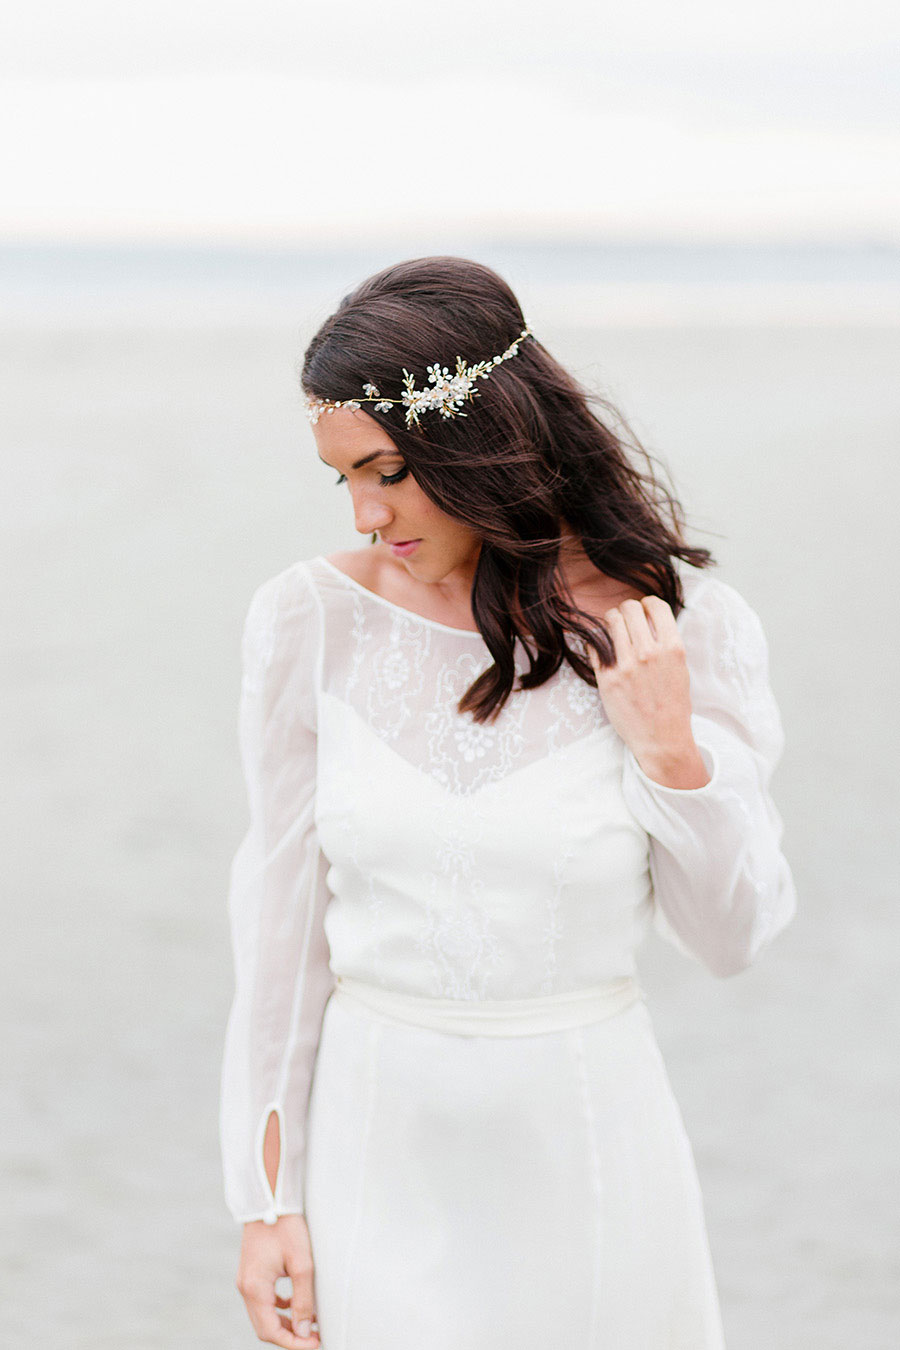 Down By The Sea! A Free-Spirited Elopement Editorial Shoot0035